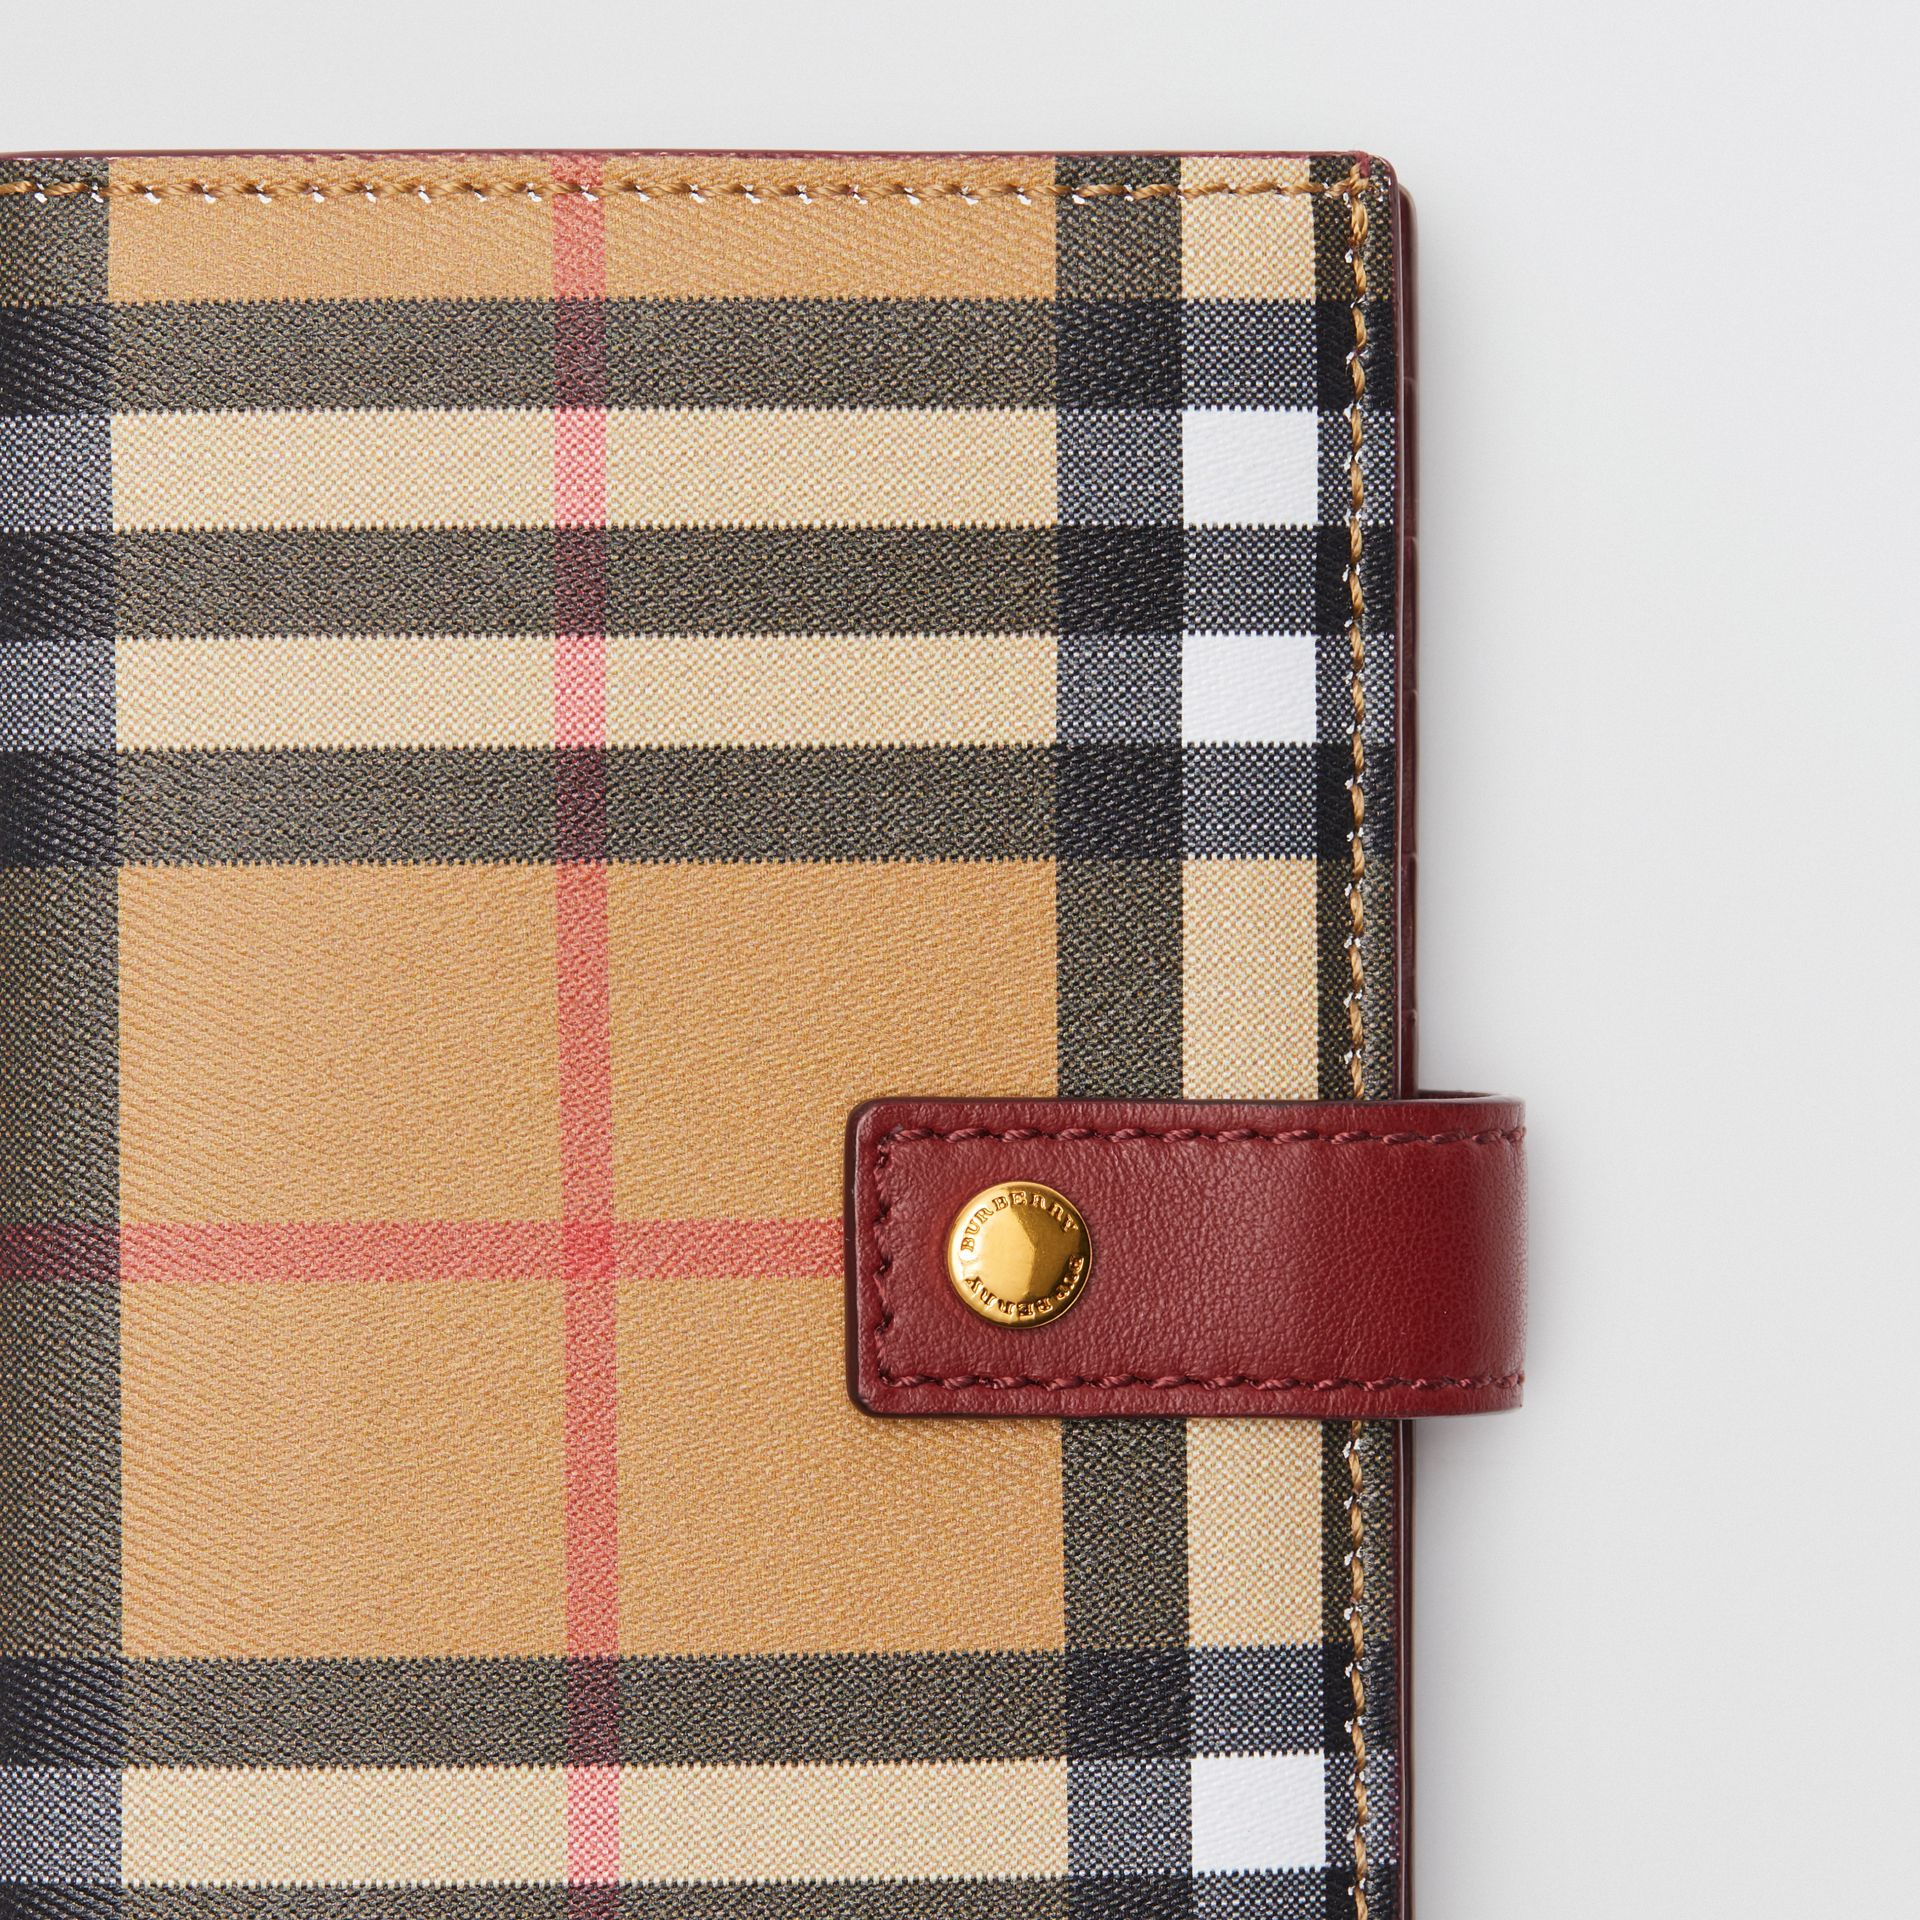 Vintage Check and Leather Folding Wallet in Crimson - Women | Burberry - gallery image 1